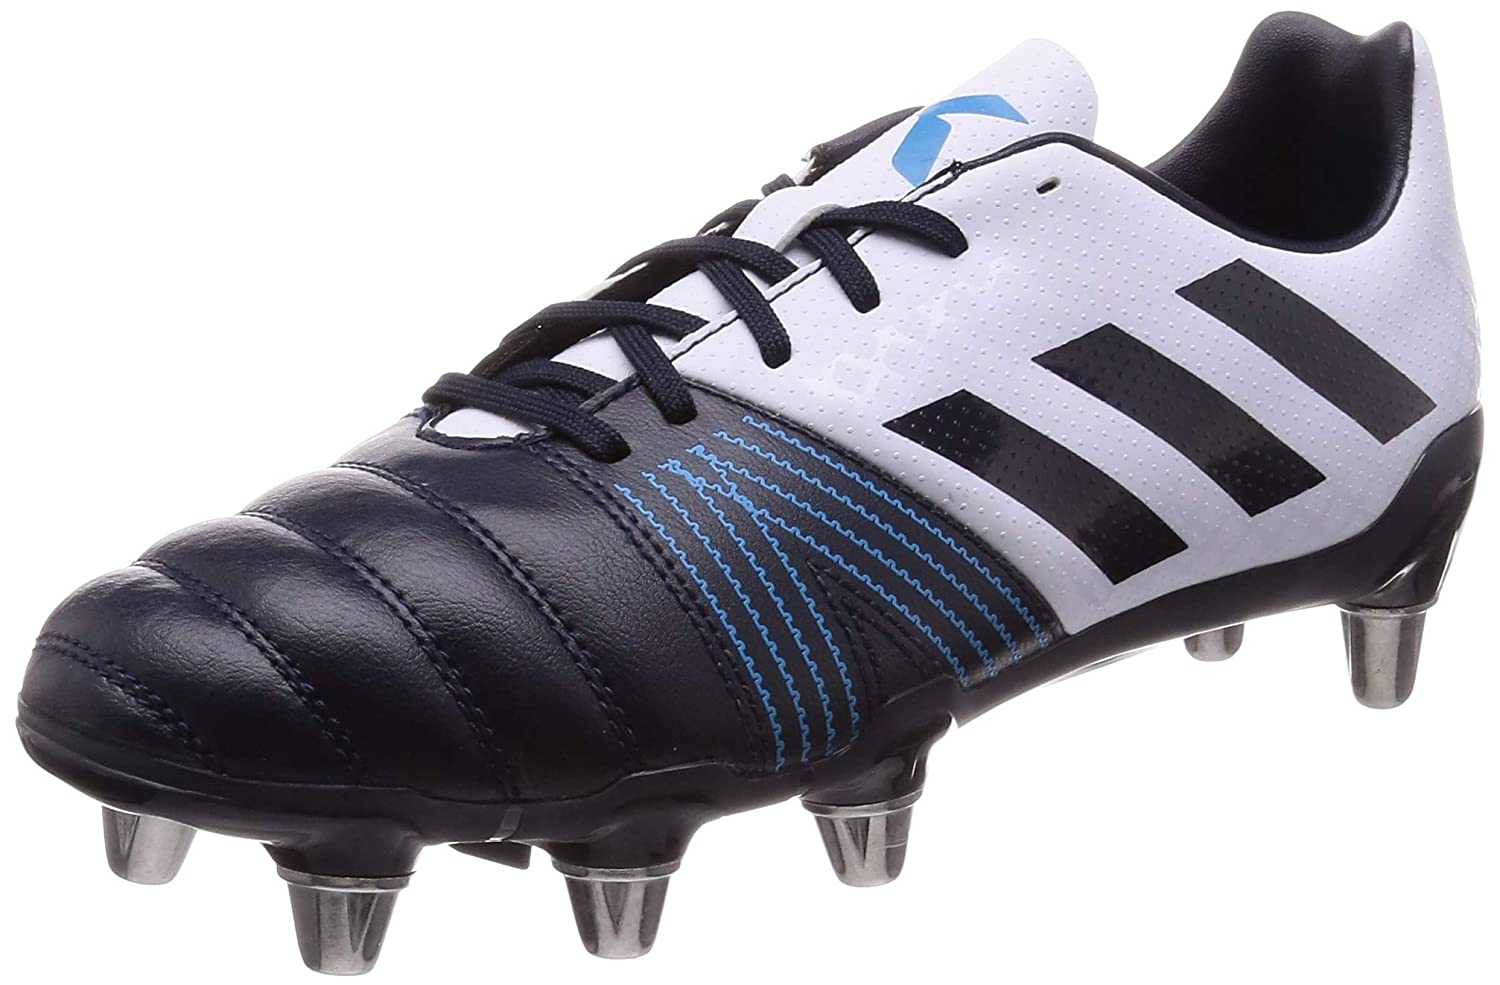 adidas Men's Kakari Sg Rugby Boots: Amazon.co.uk: Shoes & Bags